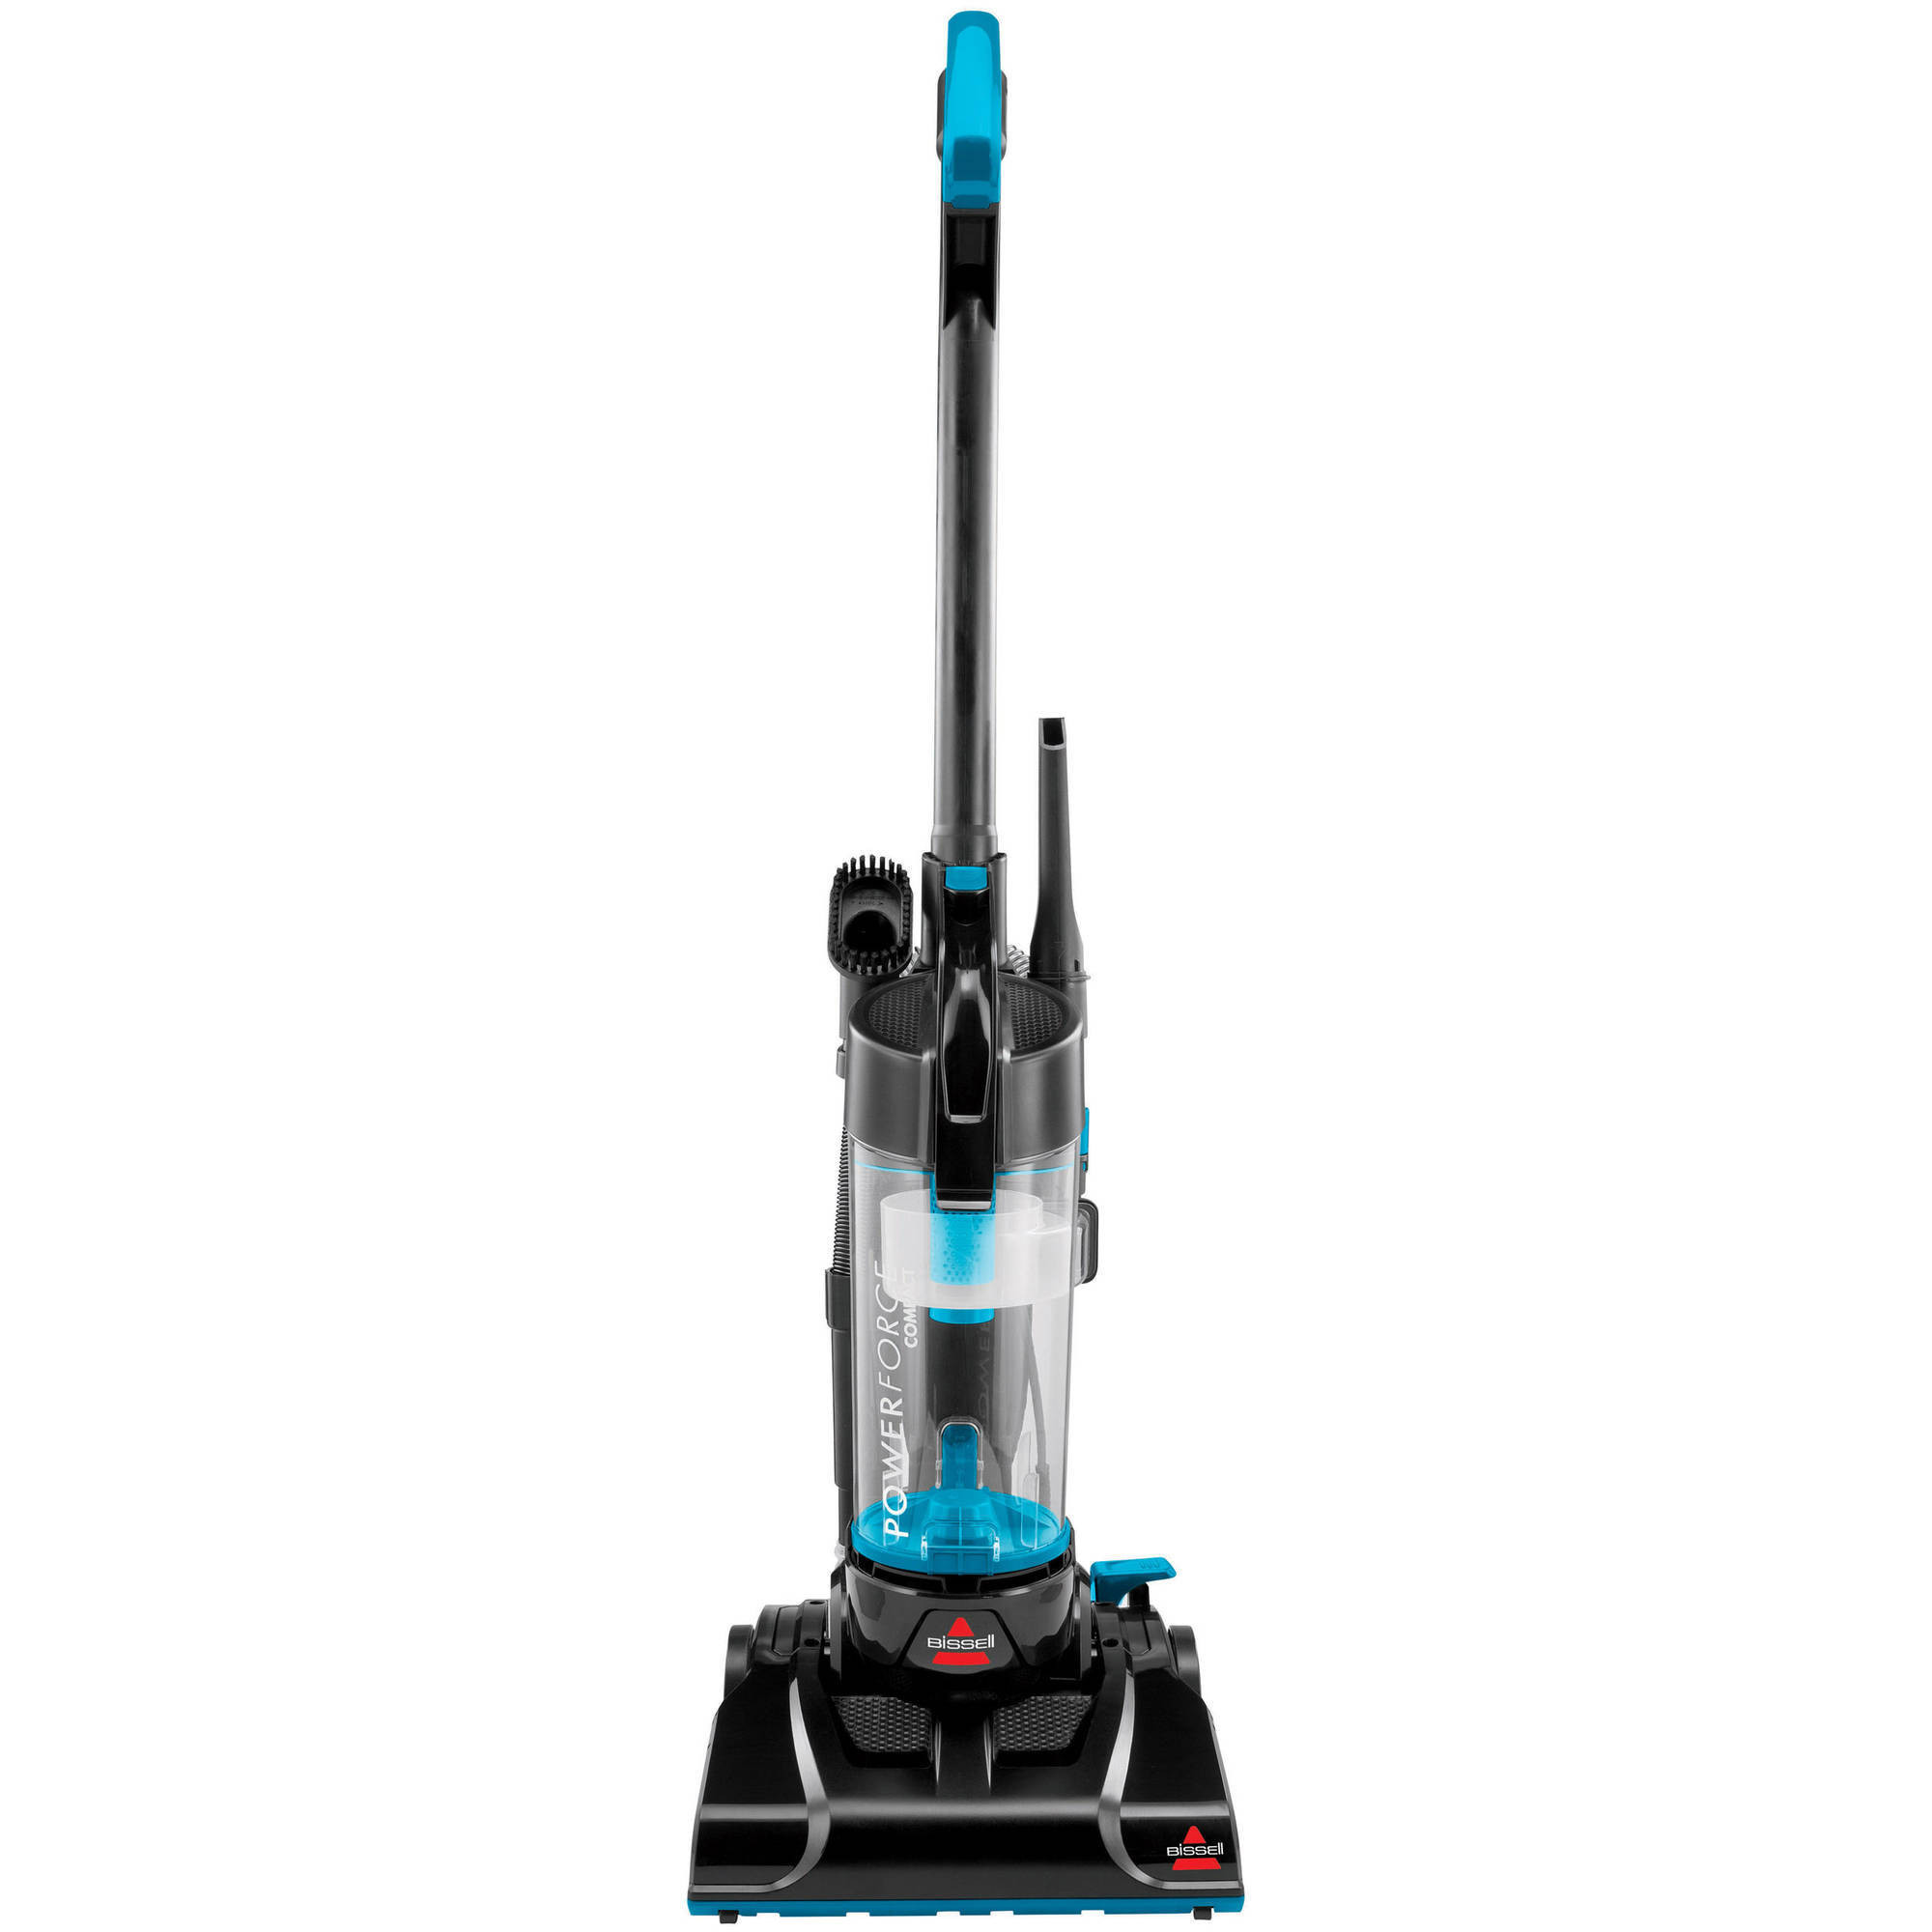 best vacuum for pet hair and hardwood floors and carpet of bissell powerforce compact bagless vacuum walmart com inside 740c7bf8 7fc9 438e 8e7c dd051d86db06 1 96d85cb265ebf29e4a5932bd3cc8a94a